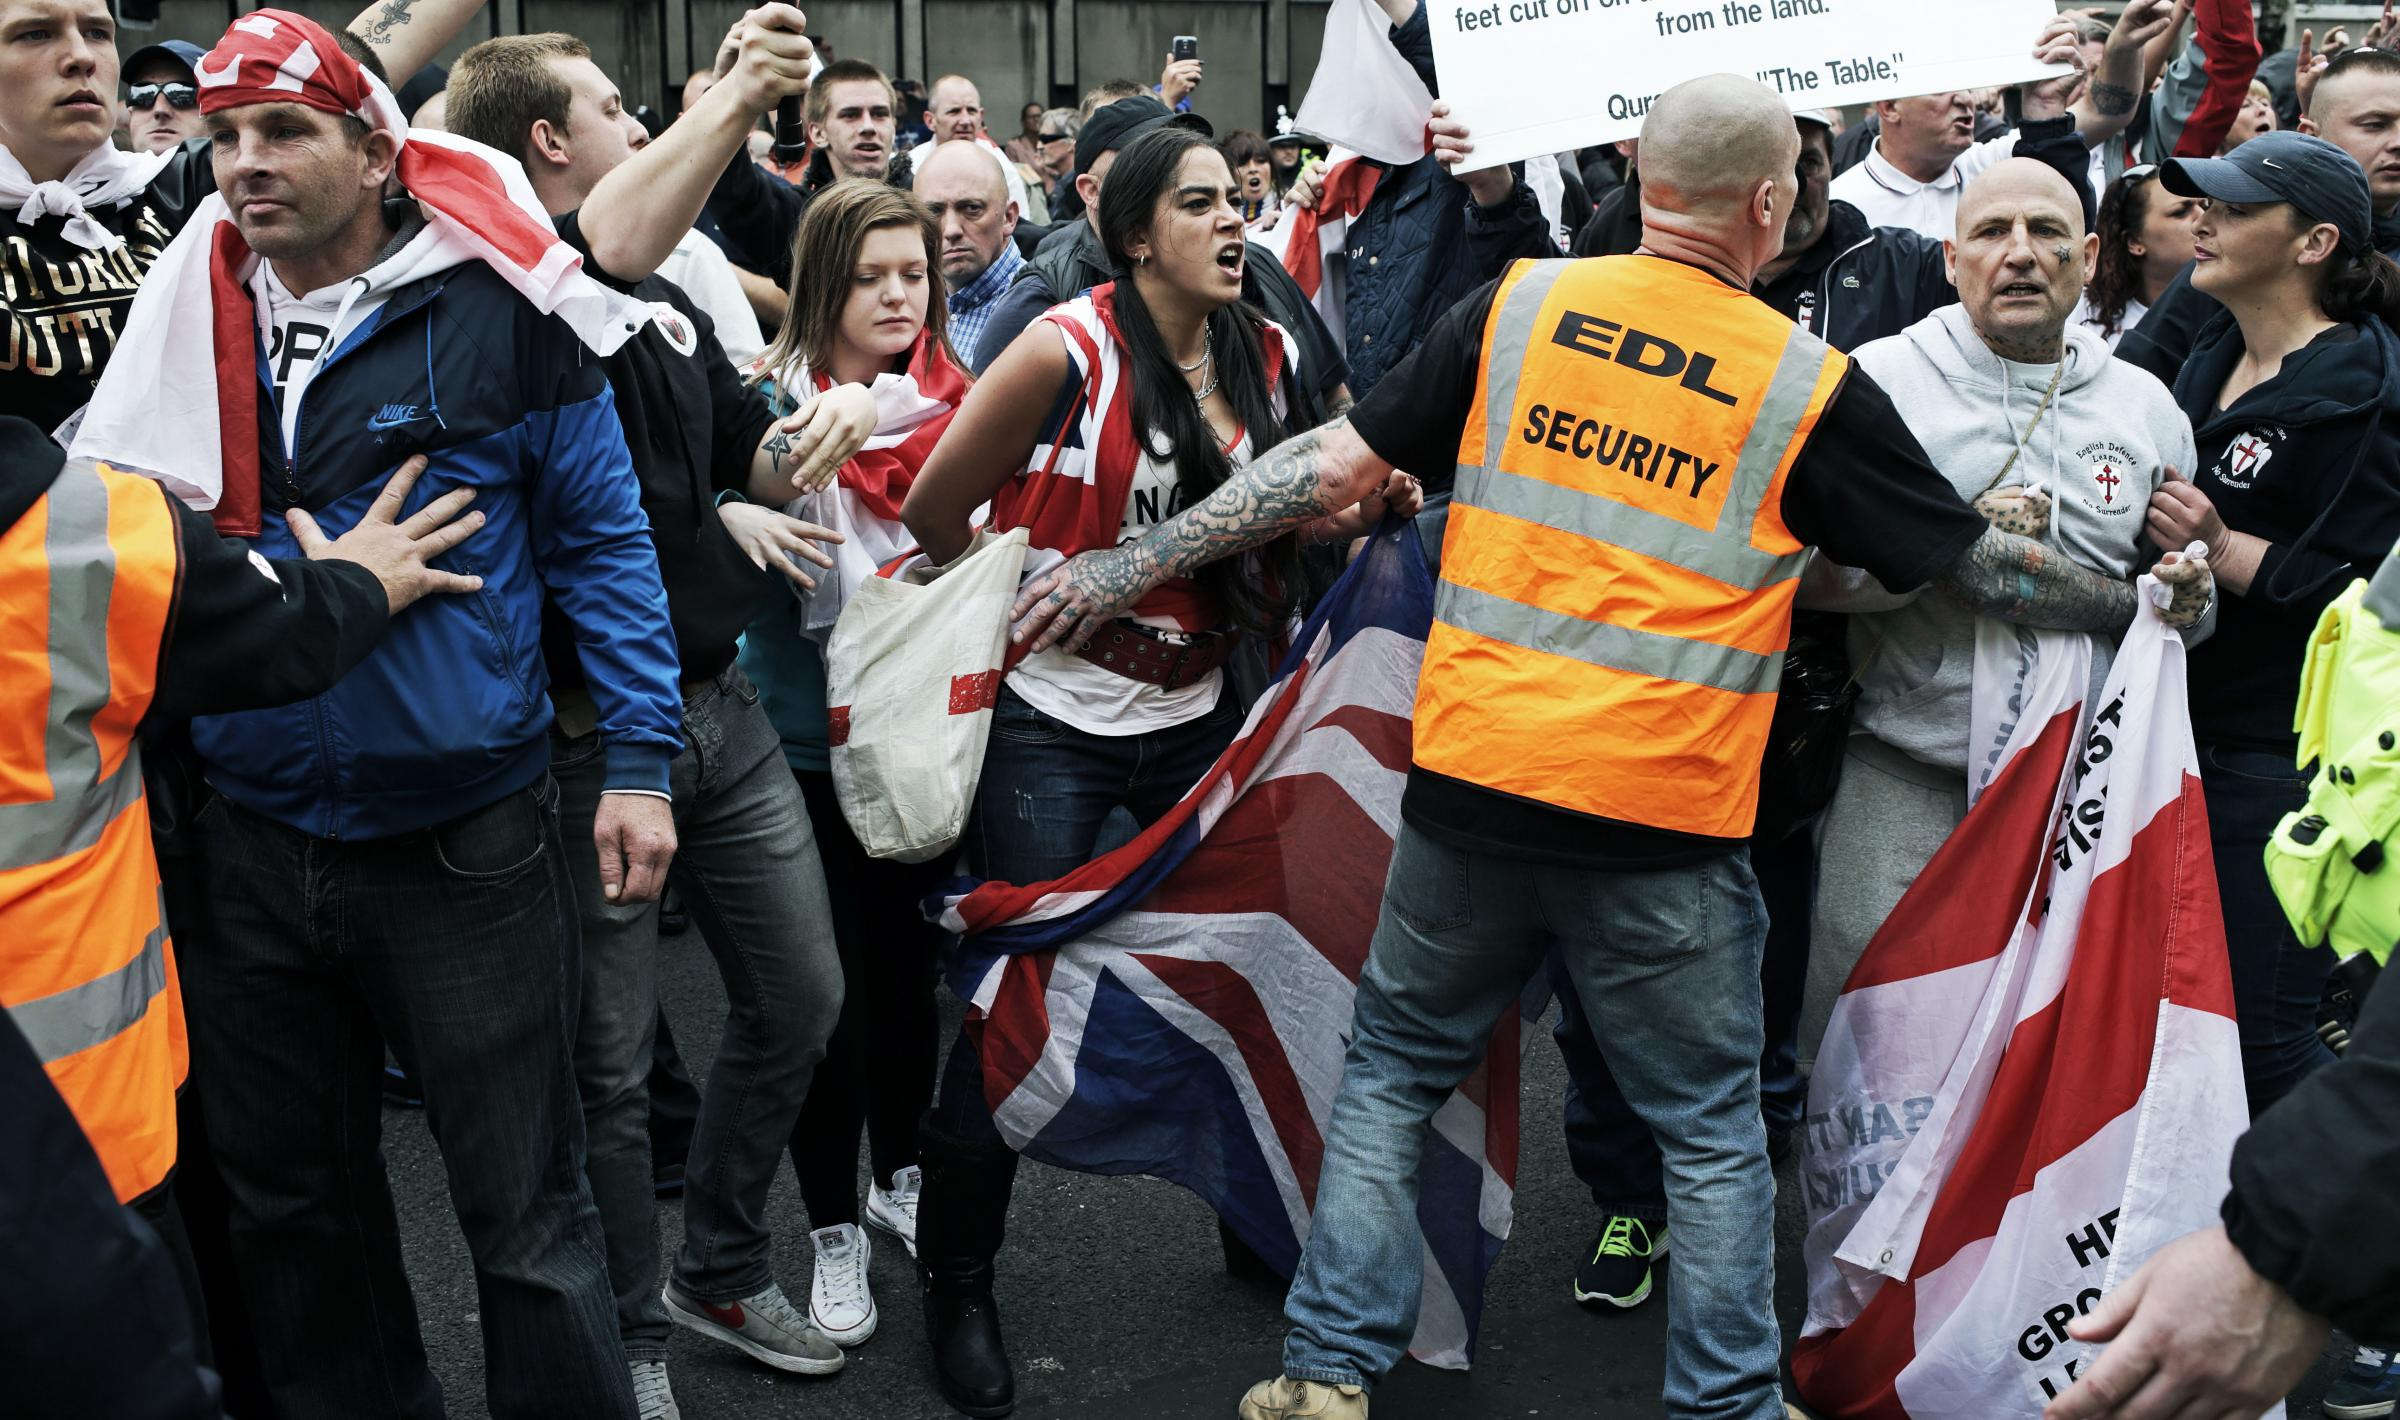 EDL supporters shout abuse at Muslims during their Middlesbrough demonstration